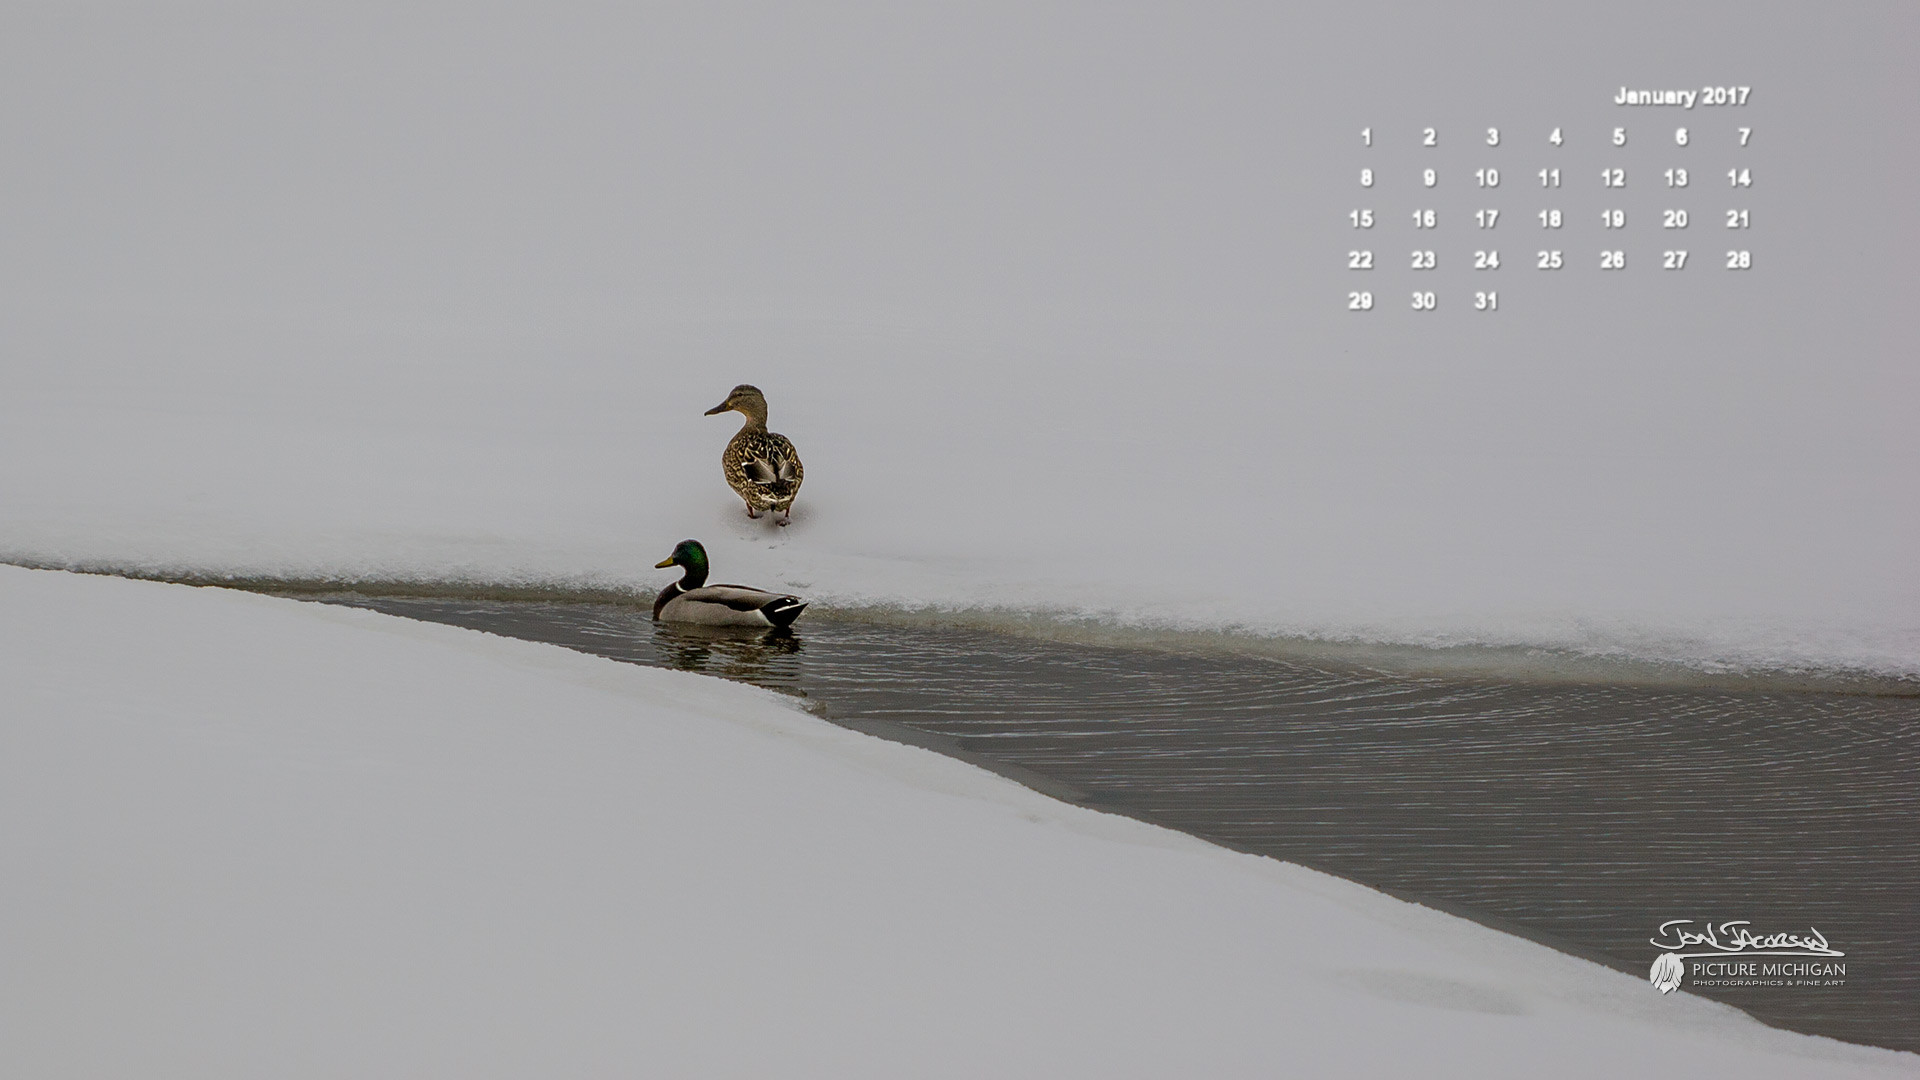 January 2018 Desktop Wallpaper 61 Images